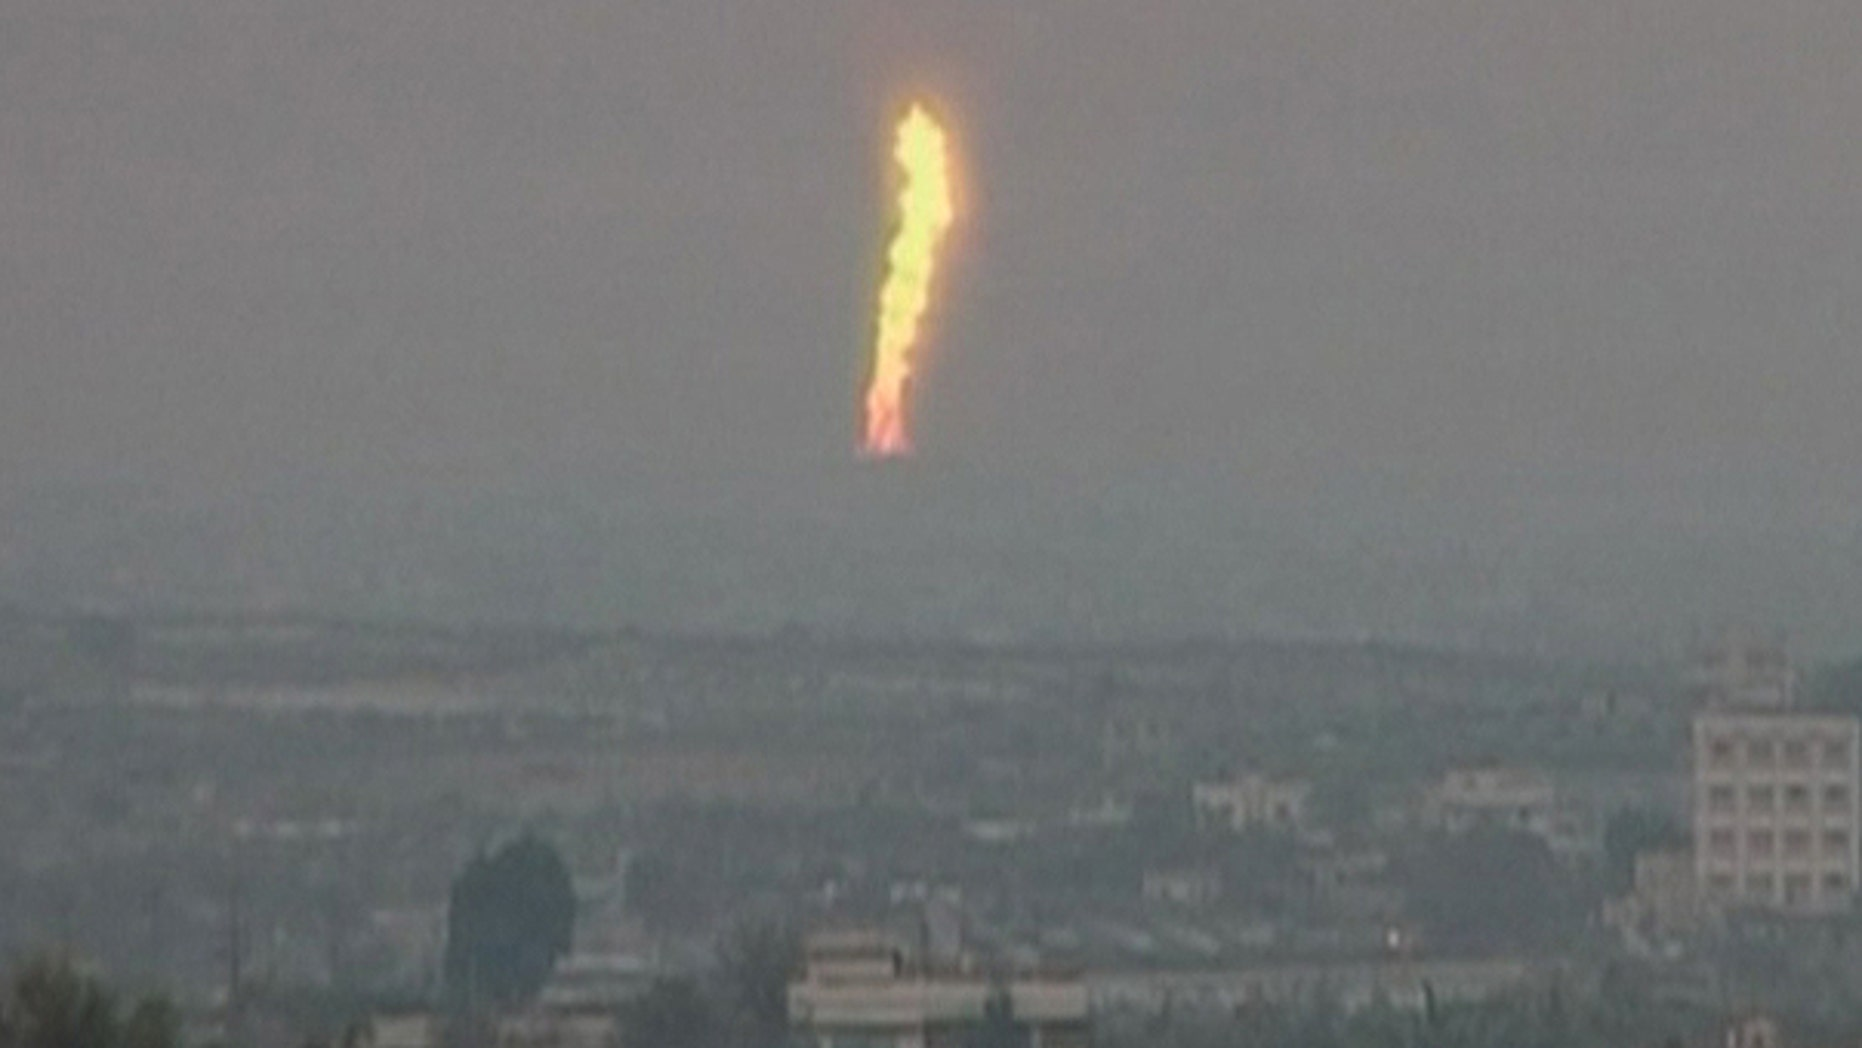 Feb. 5: In this image taken from Associated Press Television News video, a fire is seen after an explosion went off at a gas terminal in Egypt's northern Sinai Peninsula, setting off a massive fire along a gas pipeline that could be seen dozens of miles away, officials and witnesses said.